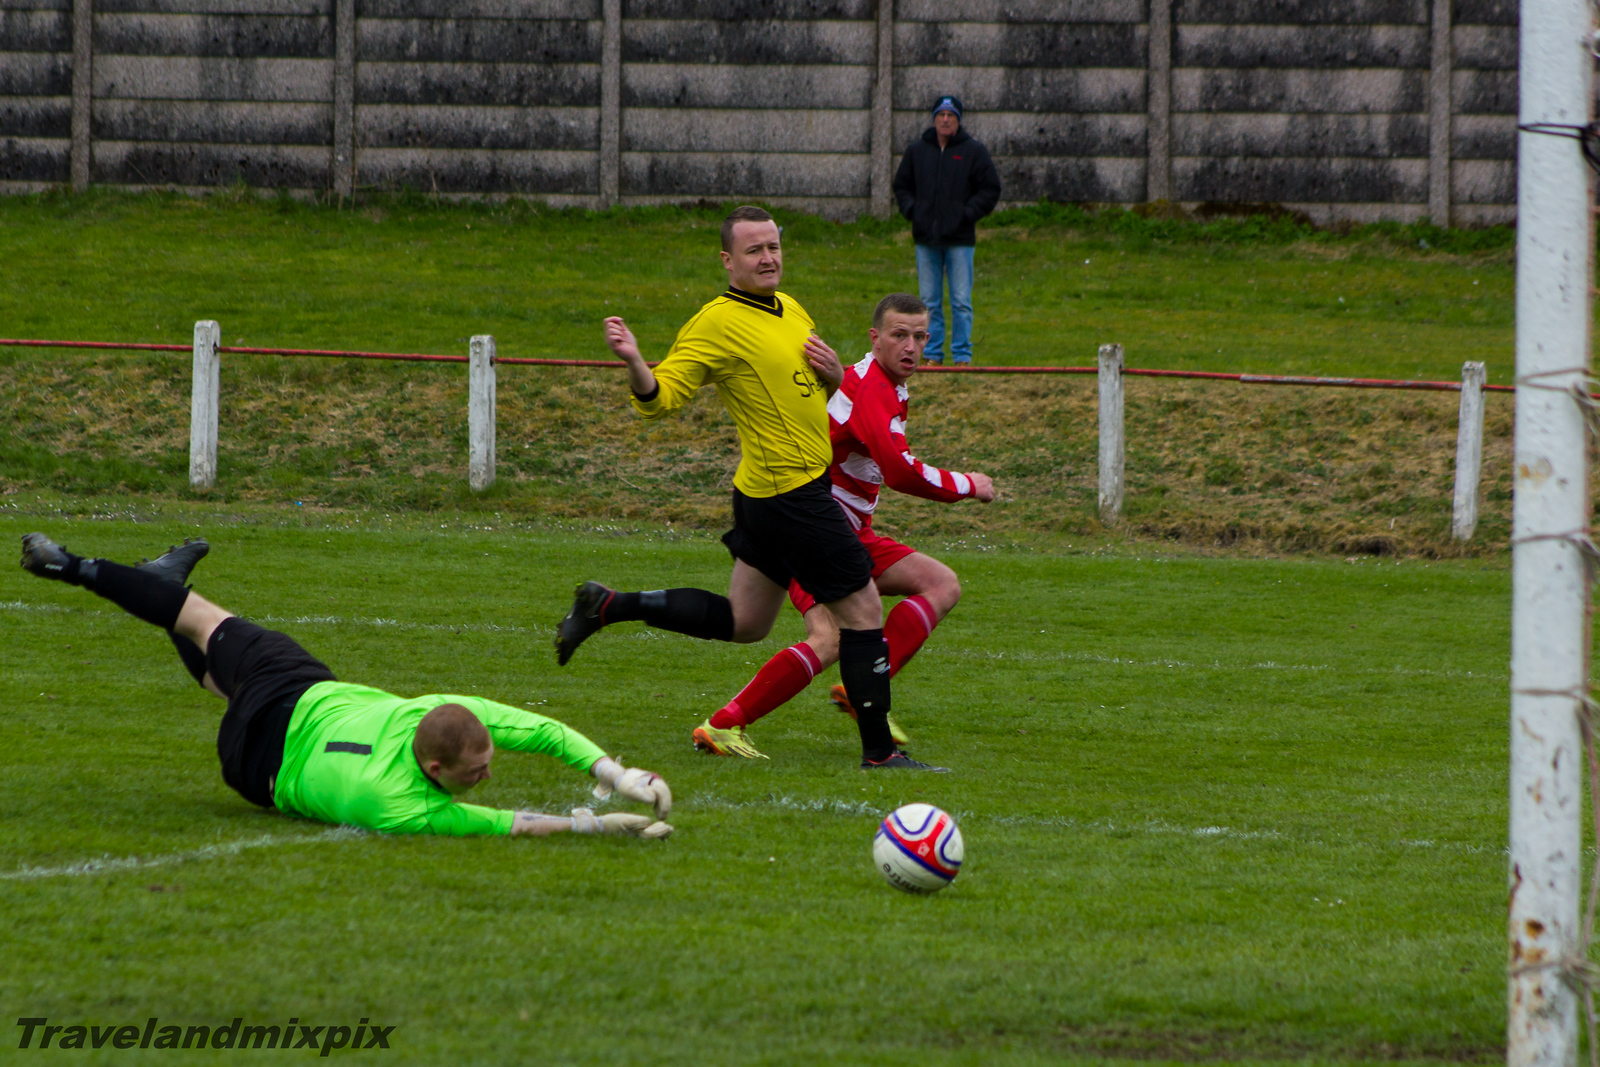 Johnstone Burgh 5 Newmains Utd 2<br> Stagecoach West of Scotland League<br> Central District Second Division<br> Keanie Park<br> 02/05/2015<br> <i>Jason Hardie makes the score 5-2</i>